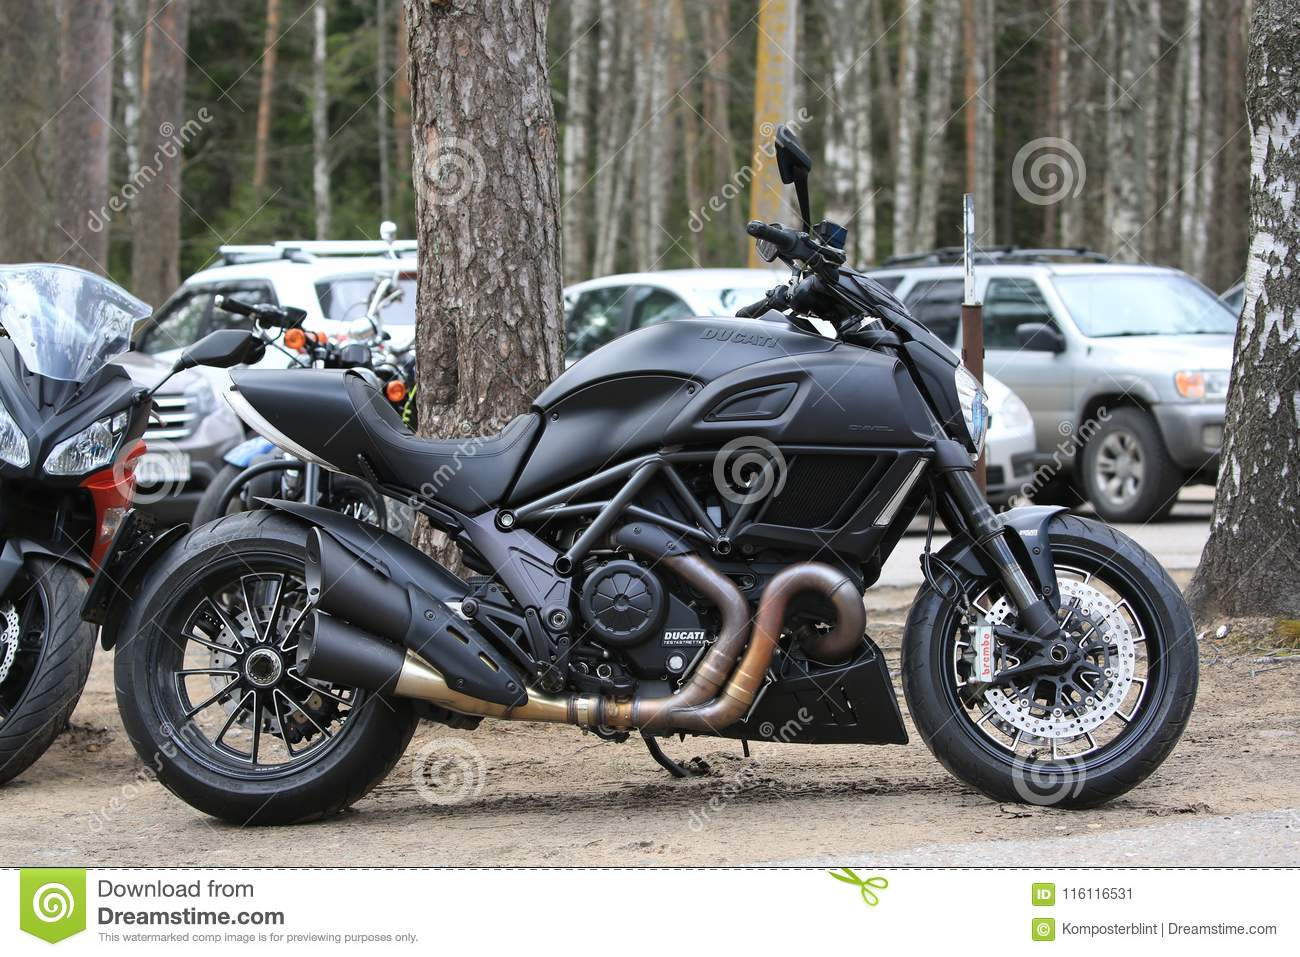 Motorcycle Ducati Diavel Matt Black Right Side View Against The